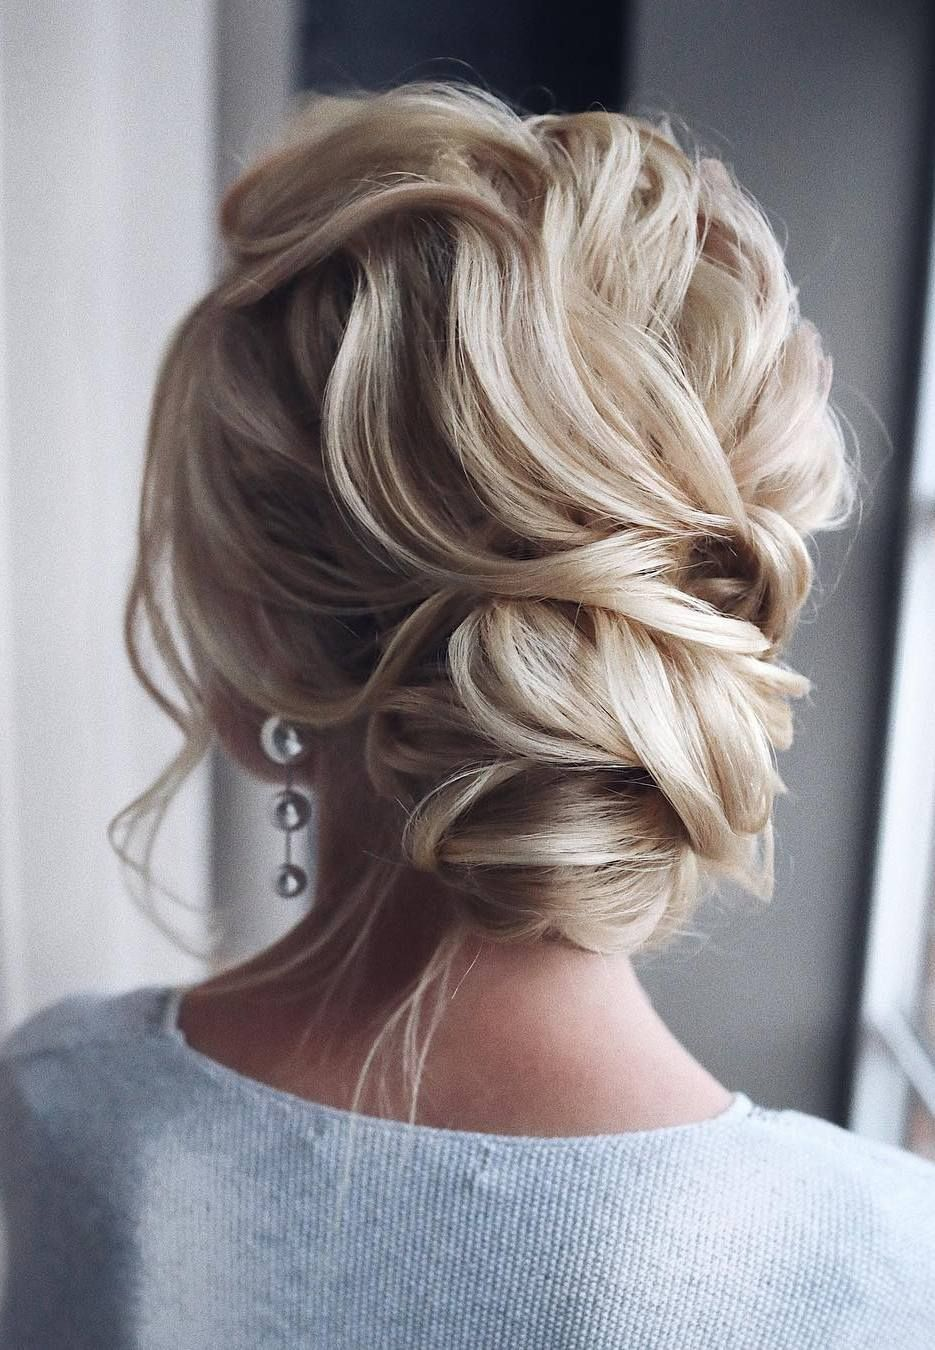 98 wedding hairstyles (updos, half up half down, curls) for